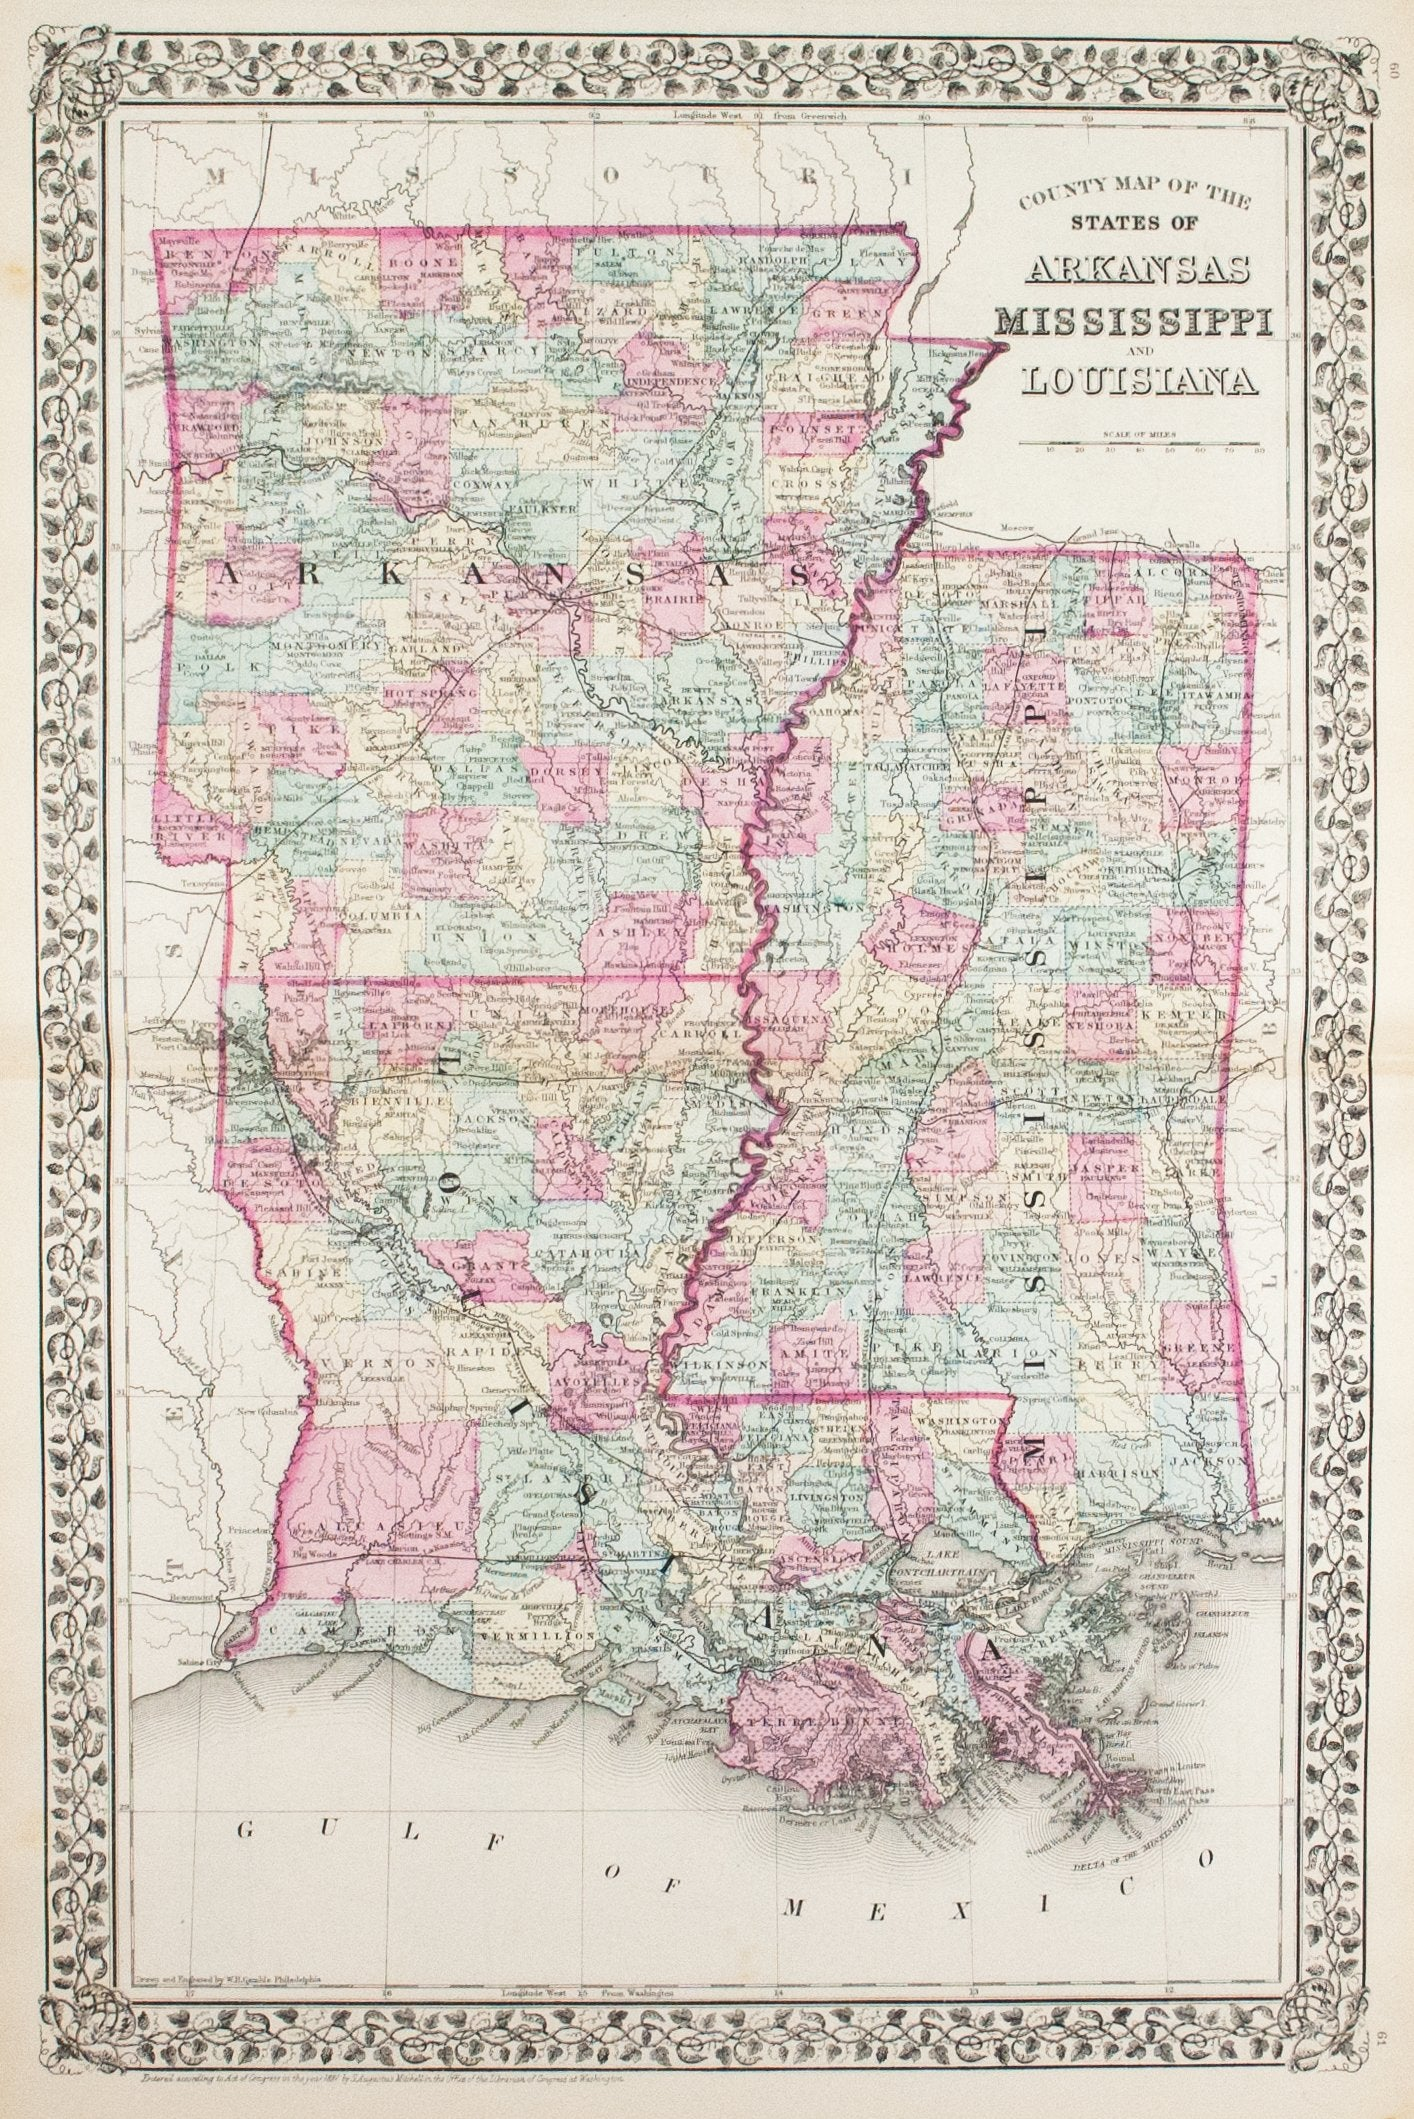 1881 County Map of the States of Arkansas Mississippi and Louisiana